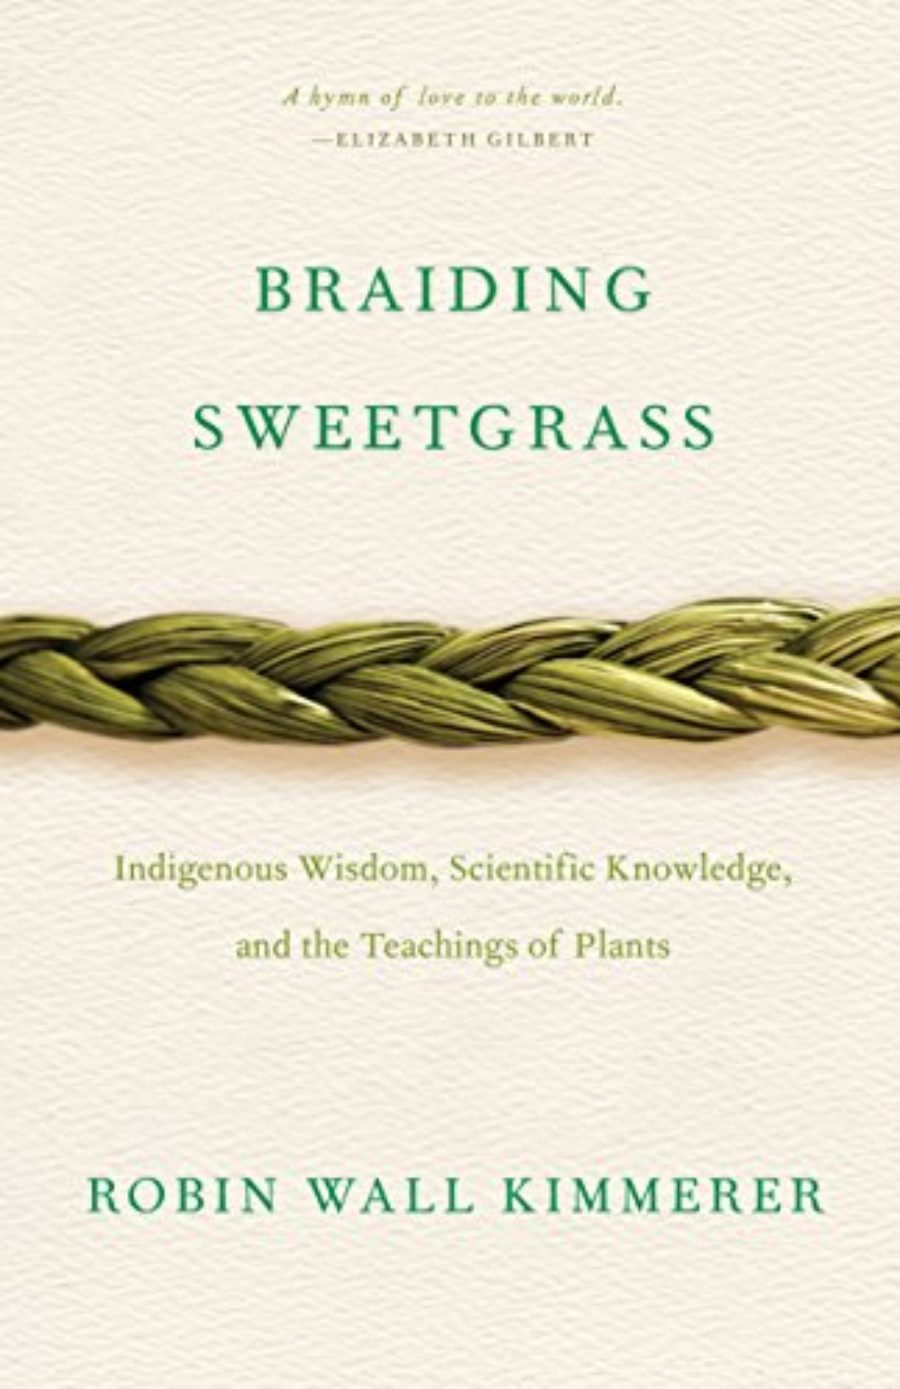 Cover of Braiding Sweetgrass: Indigenous Wisdom, Scientific Knowledge and the Teachings of Plants